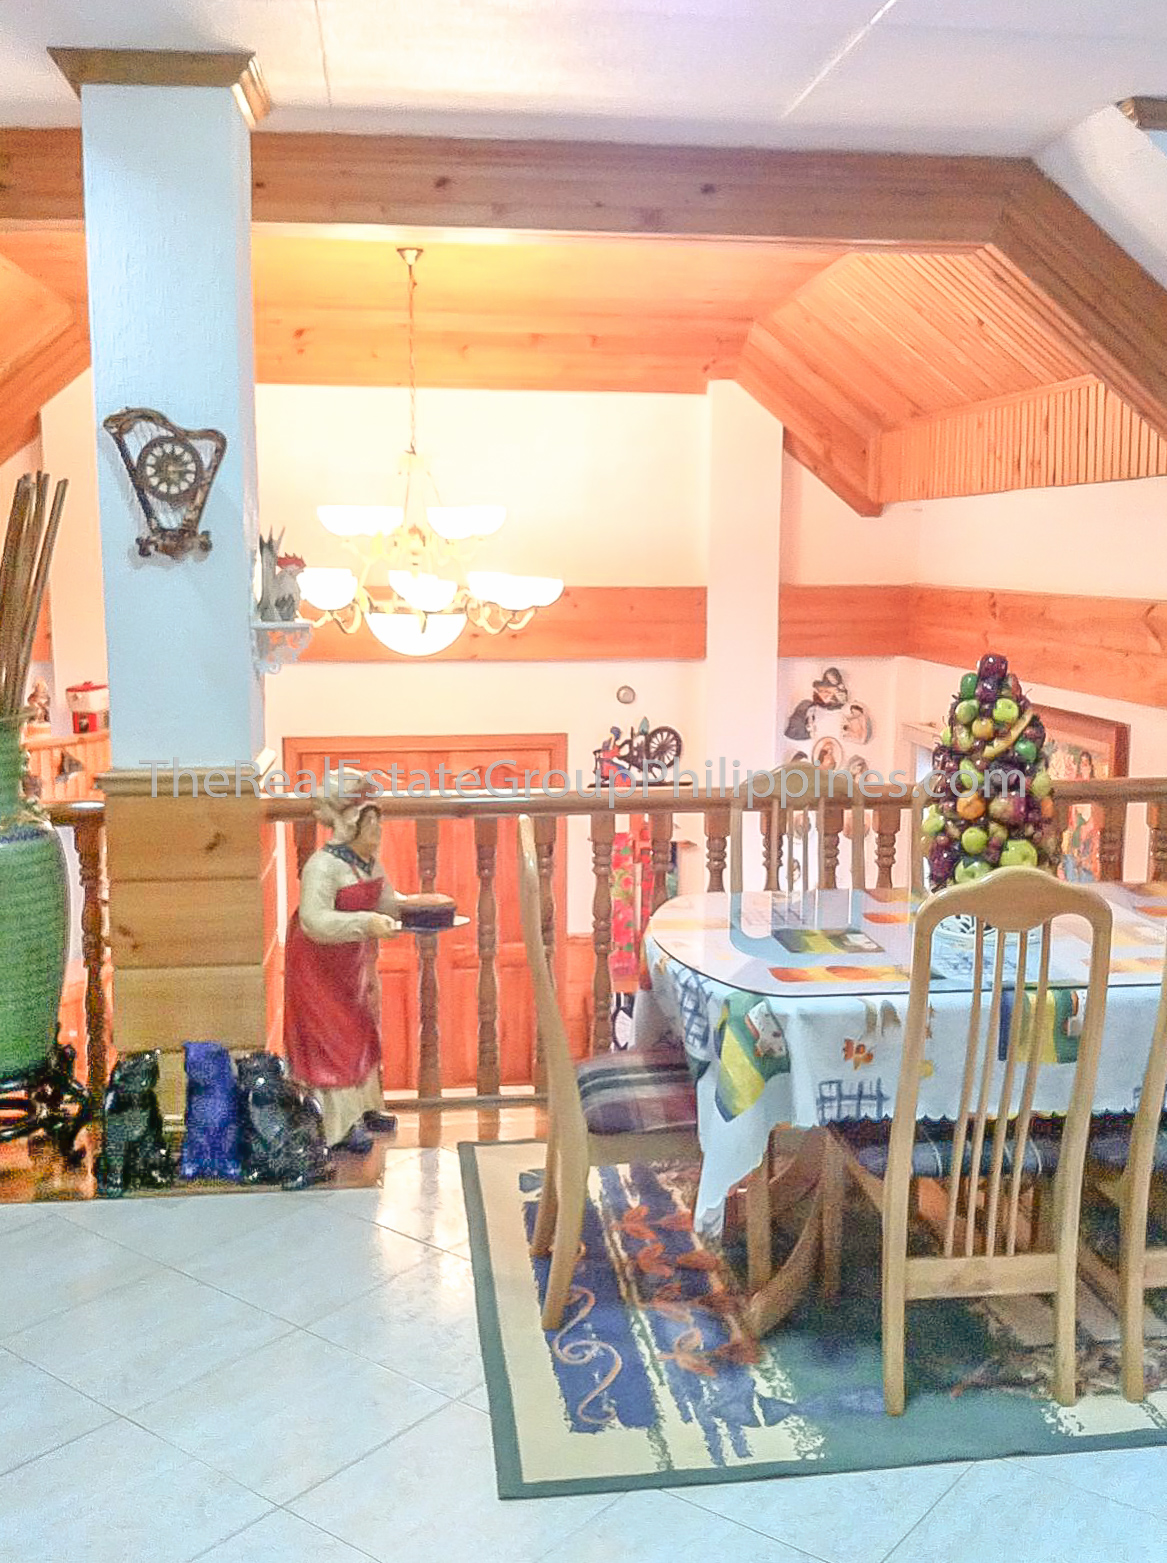 4BR House For Sale, Monte Vista Subdivision, Tagaytay-6